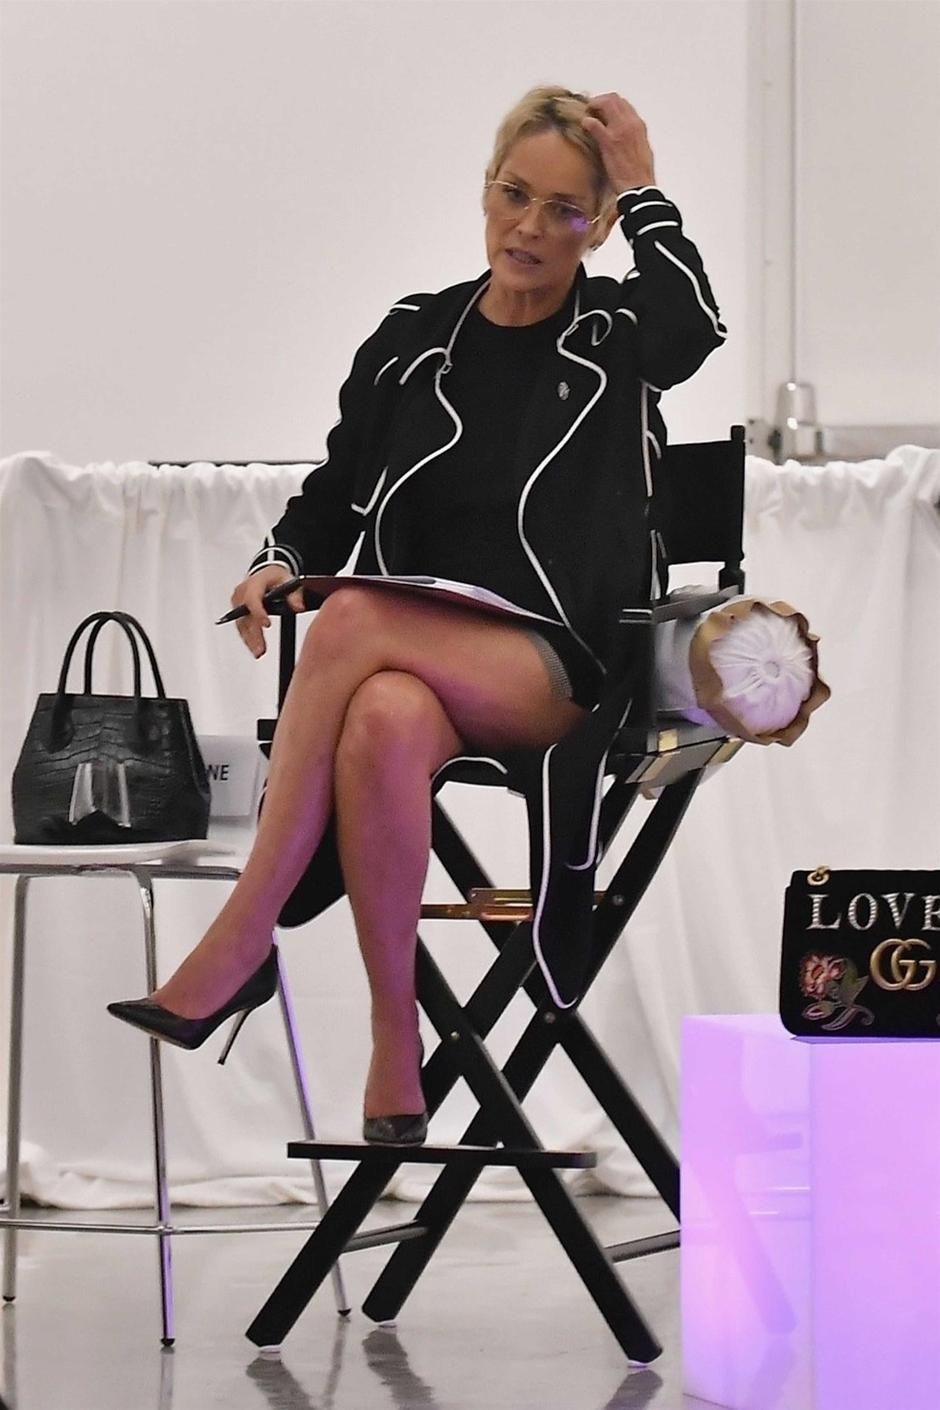 Sharon Stone speaks to a panel of Women at the Gagosian Art Gallery | Autor: PPLF